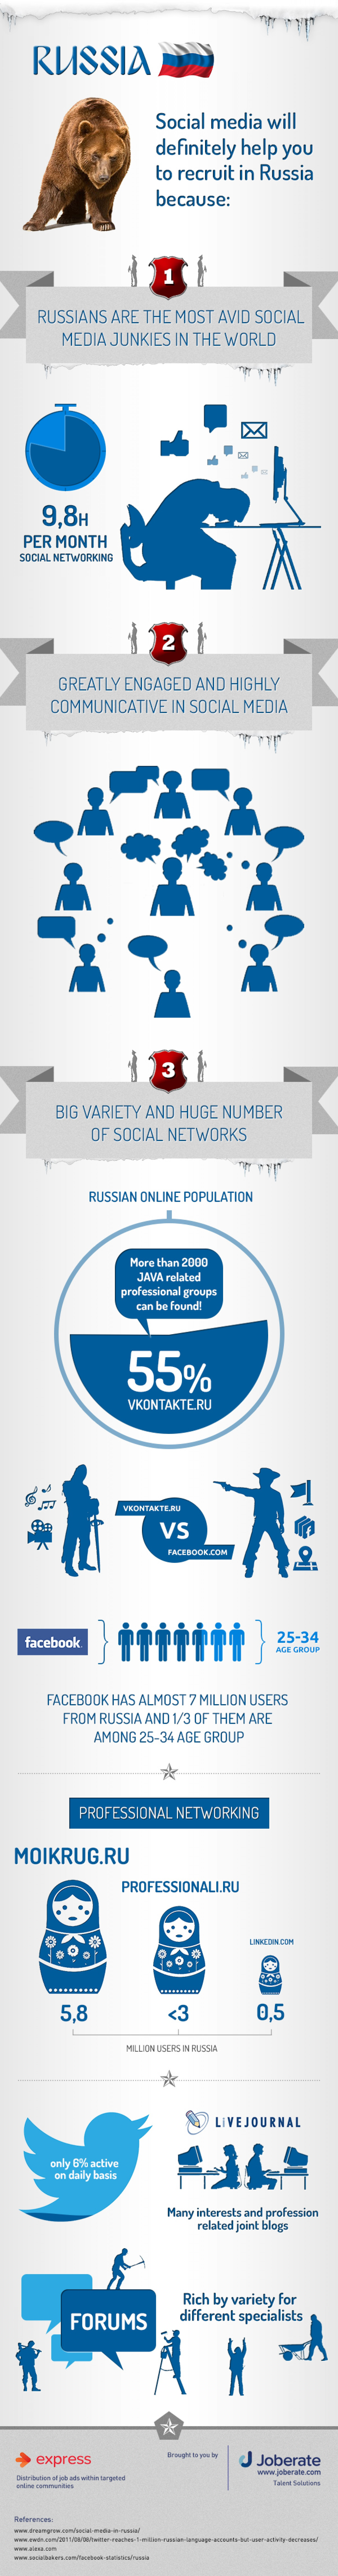 18. Social media and recruitment in Russia